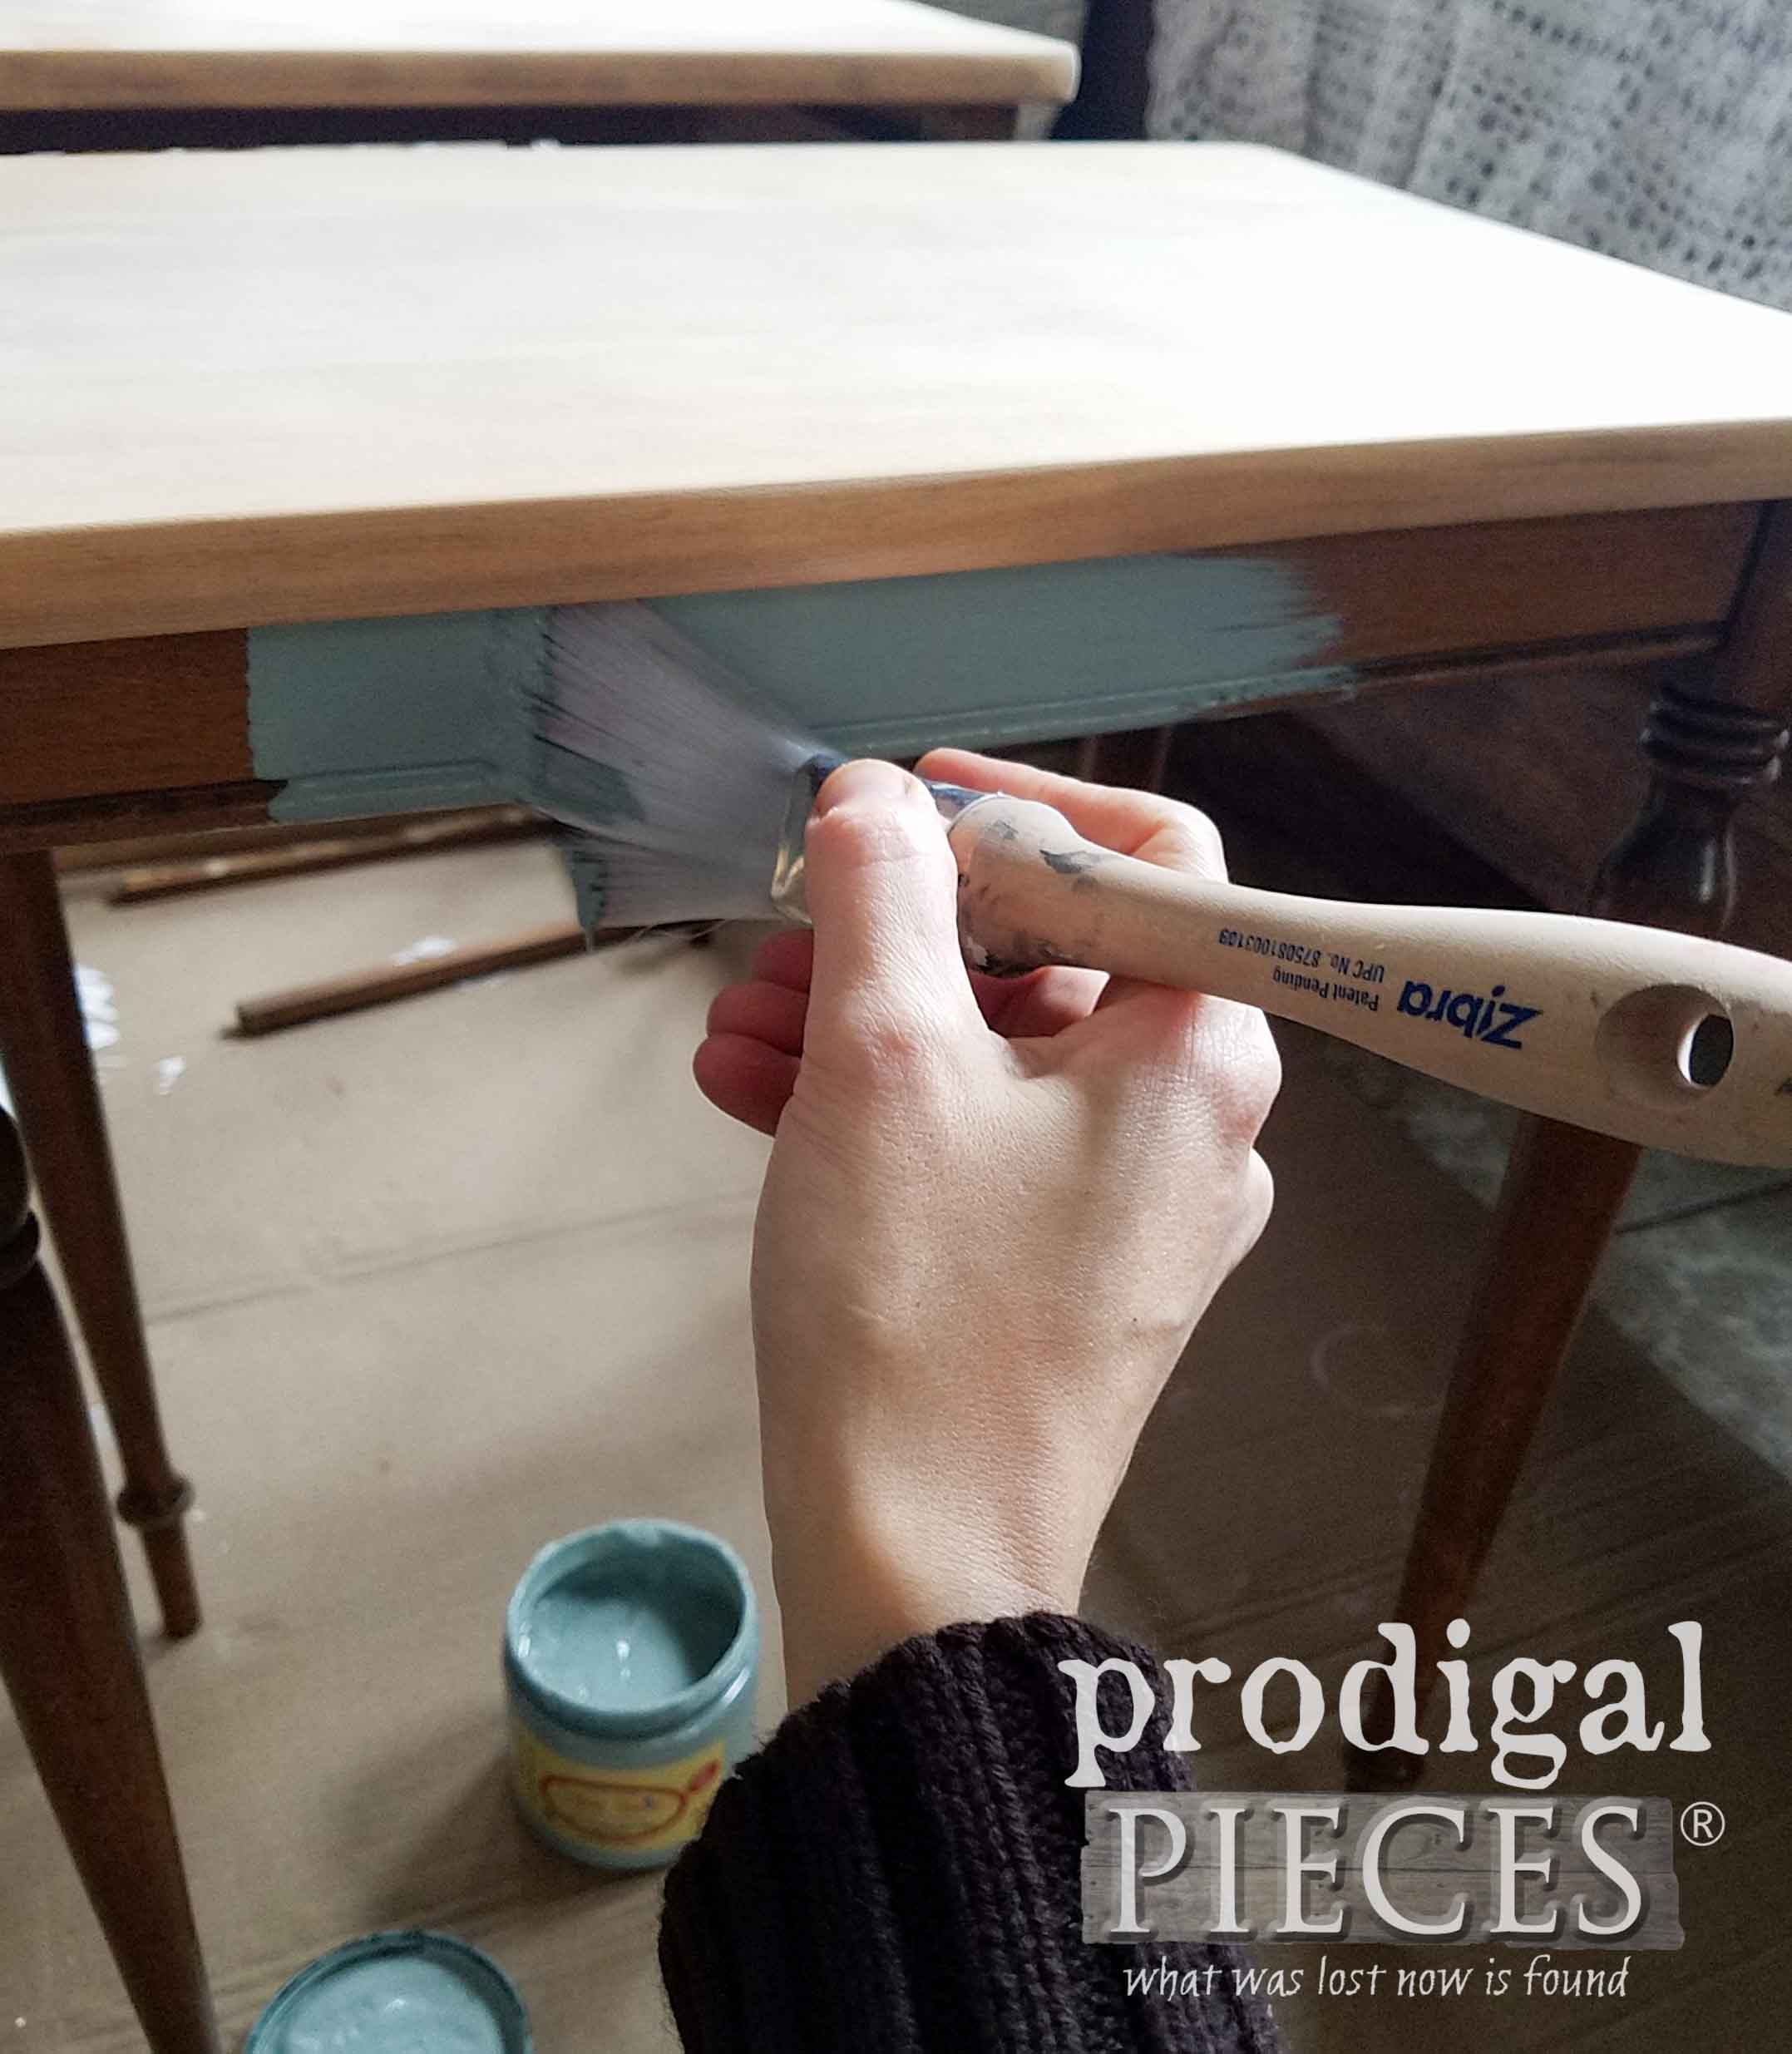 Zibra Fan Paint Brush for Painting Nesting Tables by Prodigal Pieces | prodigalpieces.com